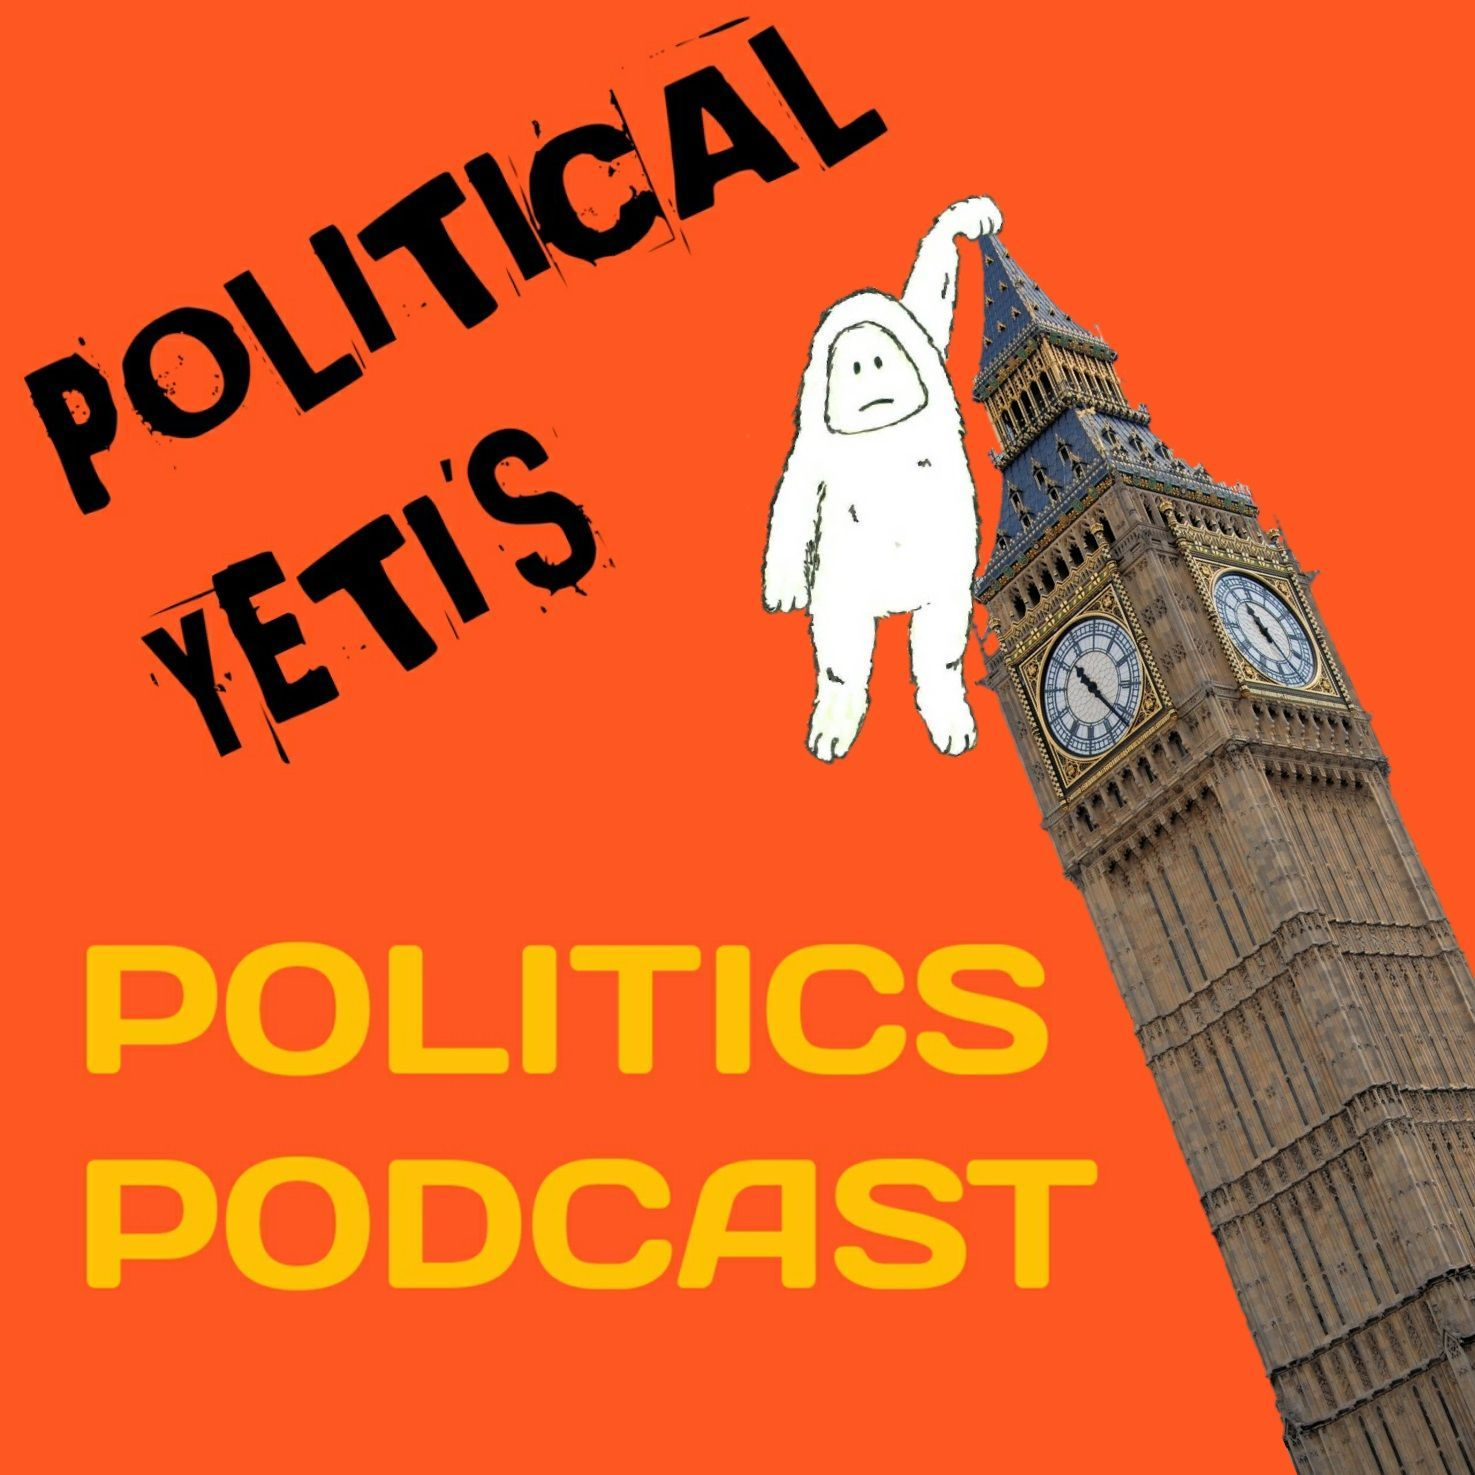 EPISODE 46 - The SNP's Stewart McDonald makes his big announcement on the party's deputy leadership